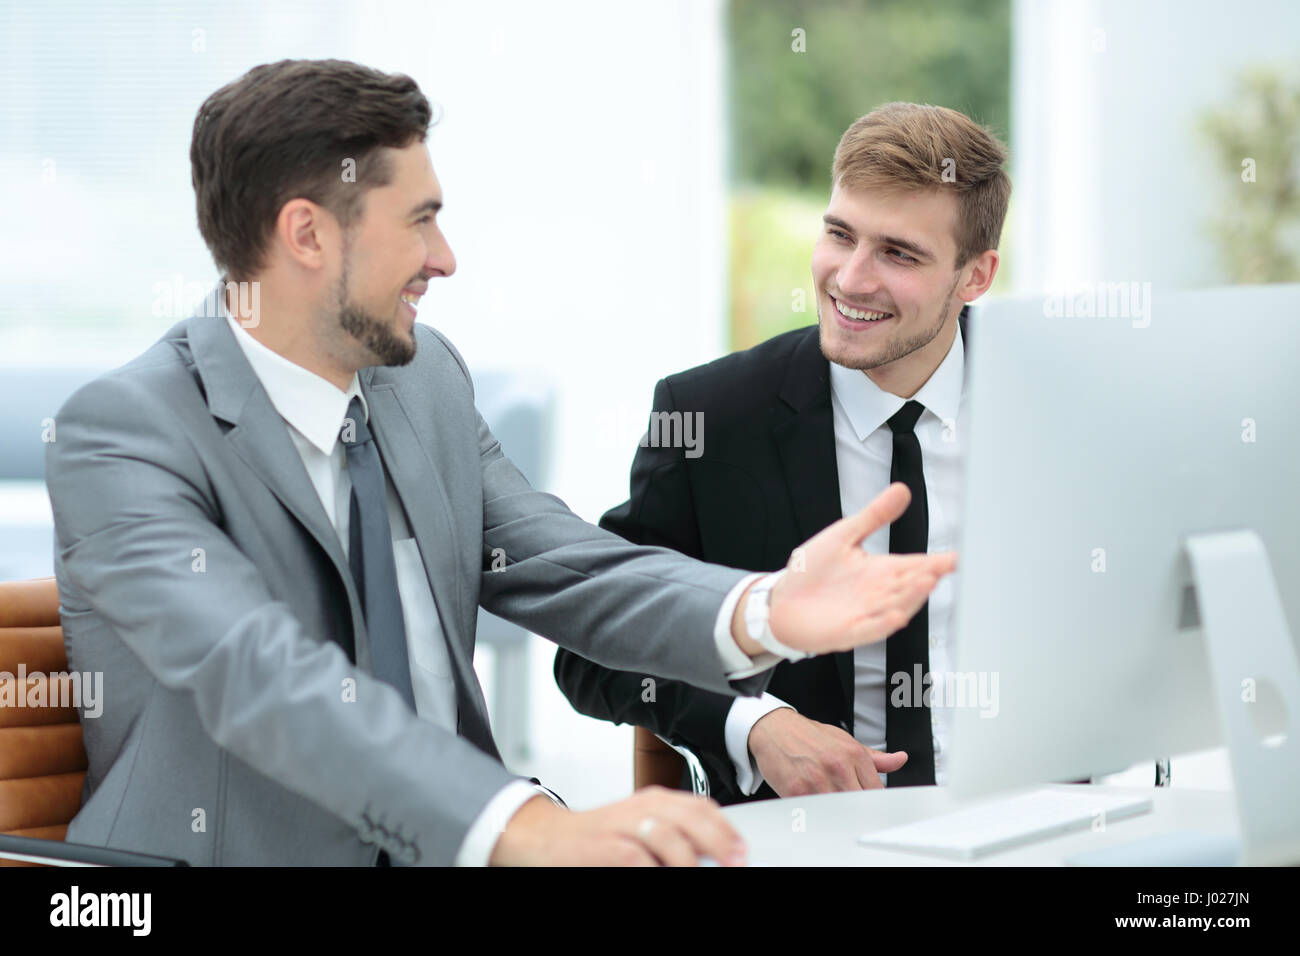 Business people at work. Two business people in formalwear discu - Stock Image